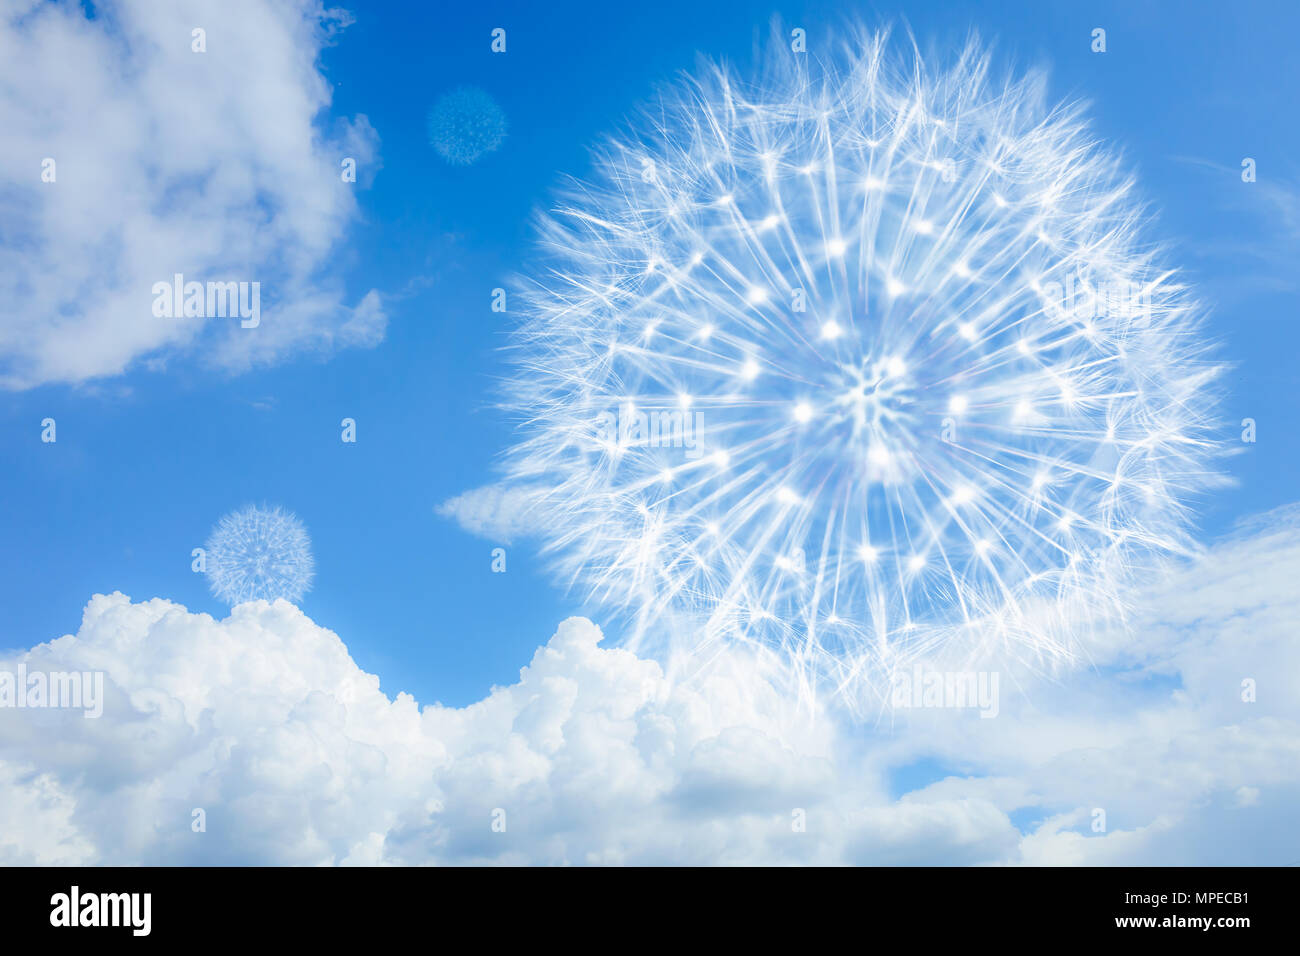 Light And Airy Dandelion On A Blue Background With Clouds